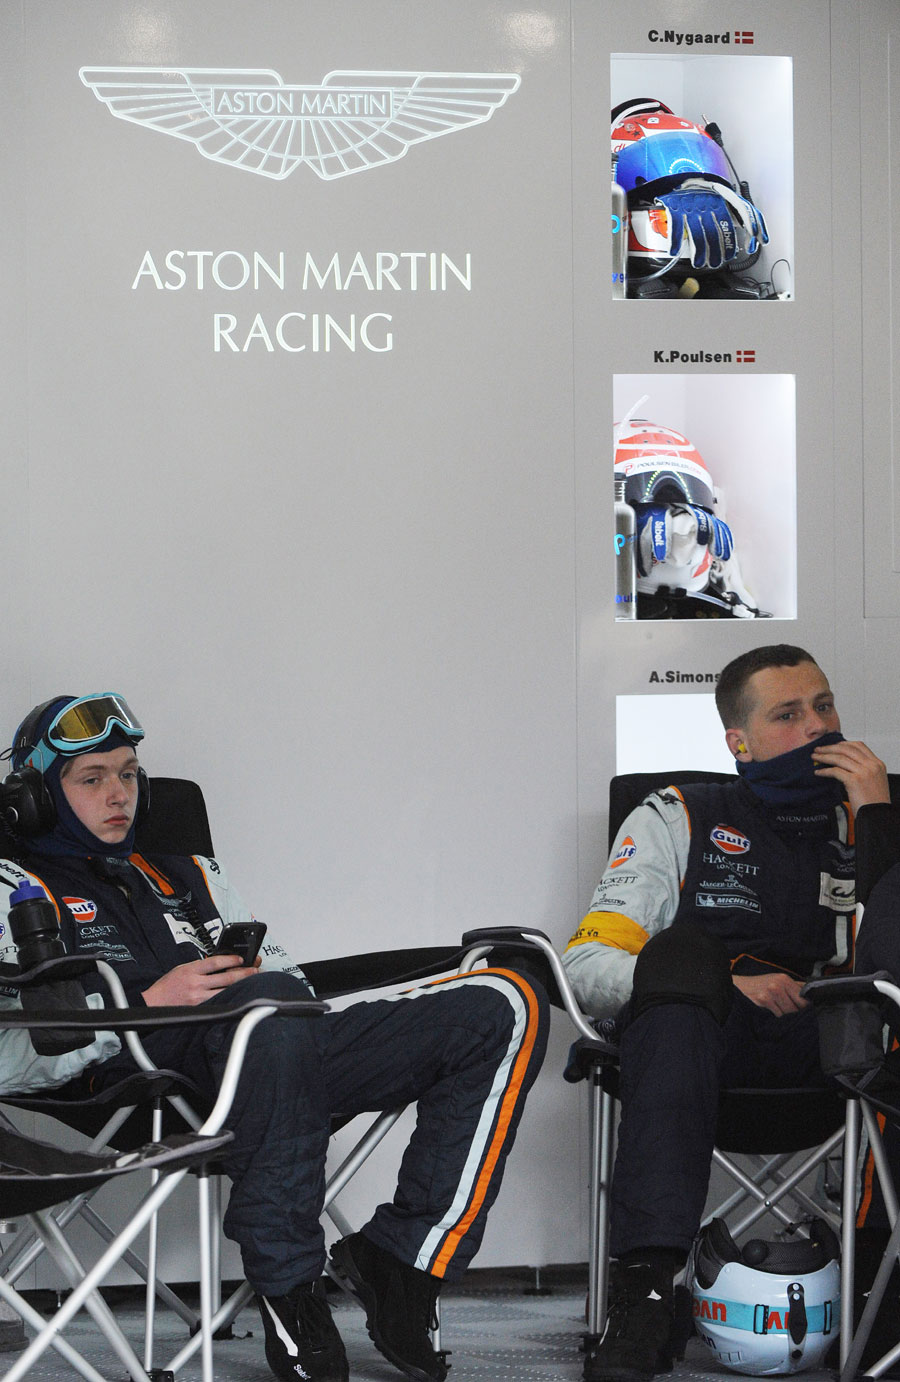 Aston Martin mechanics sit shocked after Allan Simonsen died after crashing into safety barriers